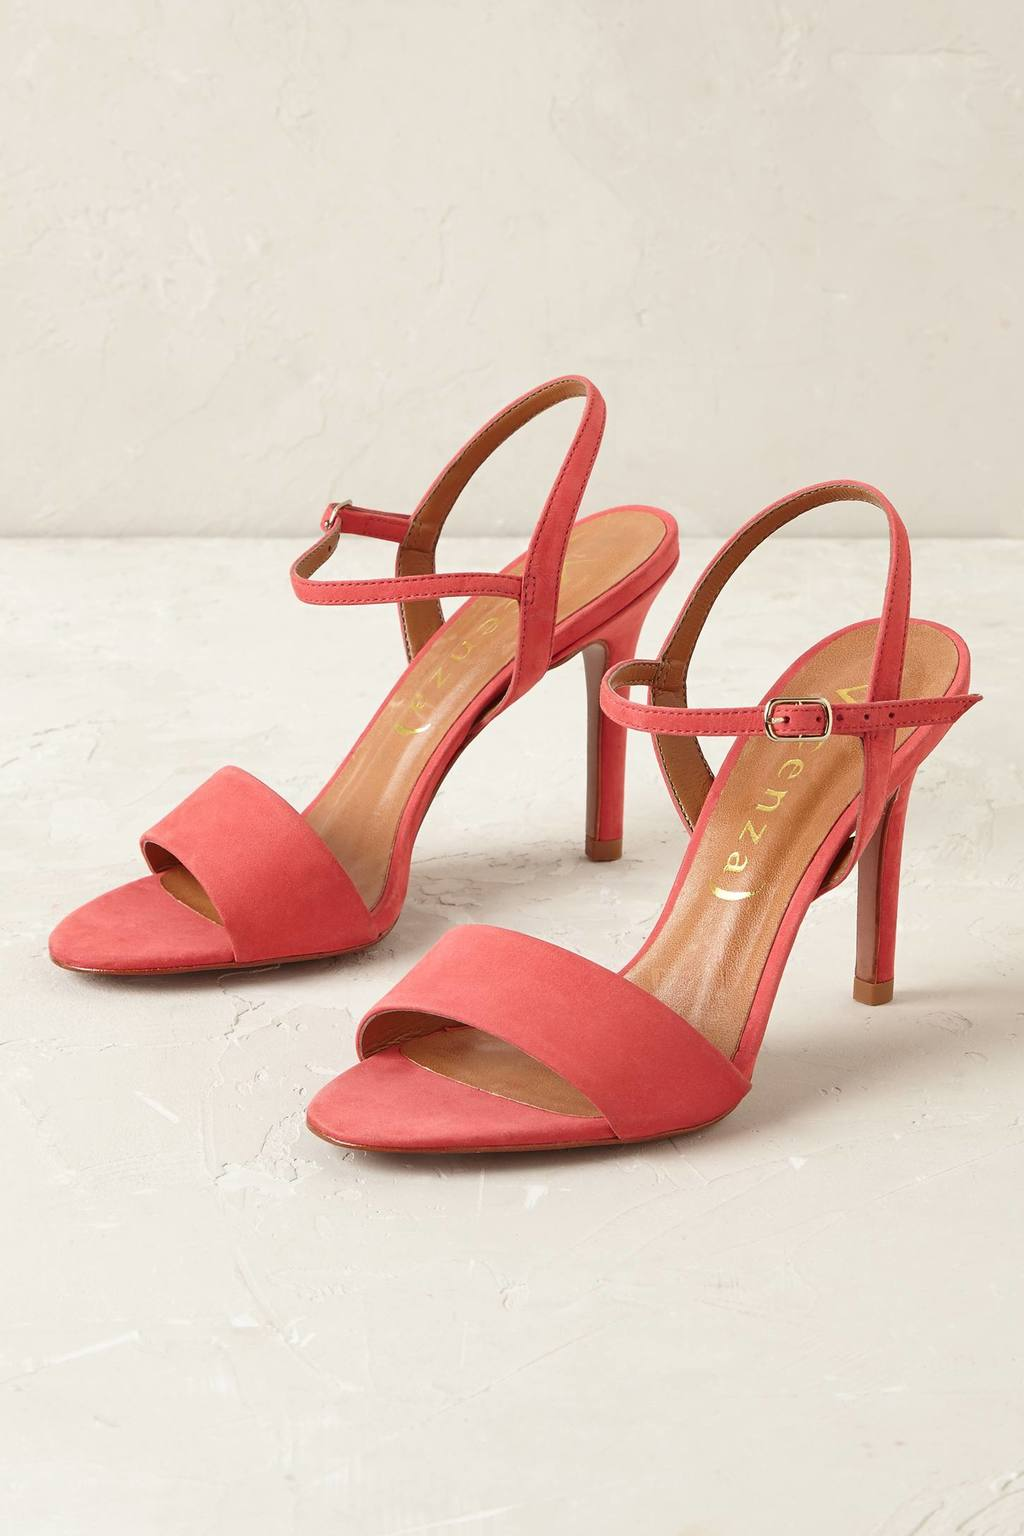 Rosalia Nubuck Heels - predominant colour: coral; occasions: evening, occasion; material: faux leather; heel height: high; heel: stiletto; toe: open toe/peeptoe; style: standard; finish: plain; pattern: plain; season: s/s 2016; wardrobe: event